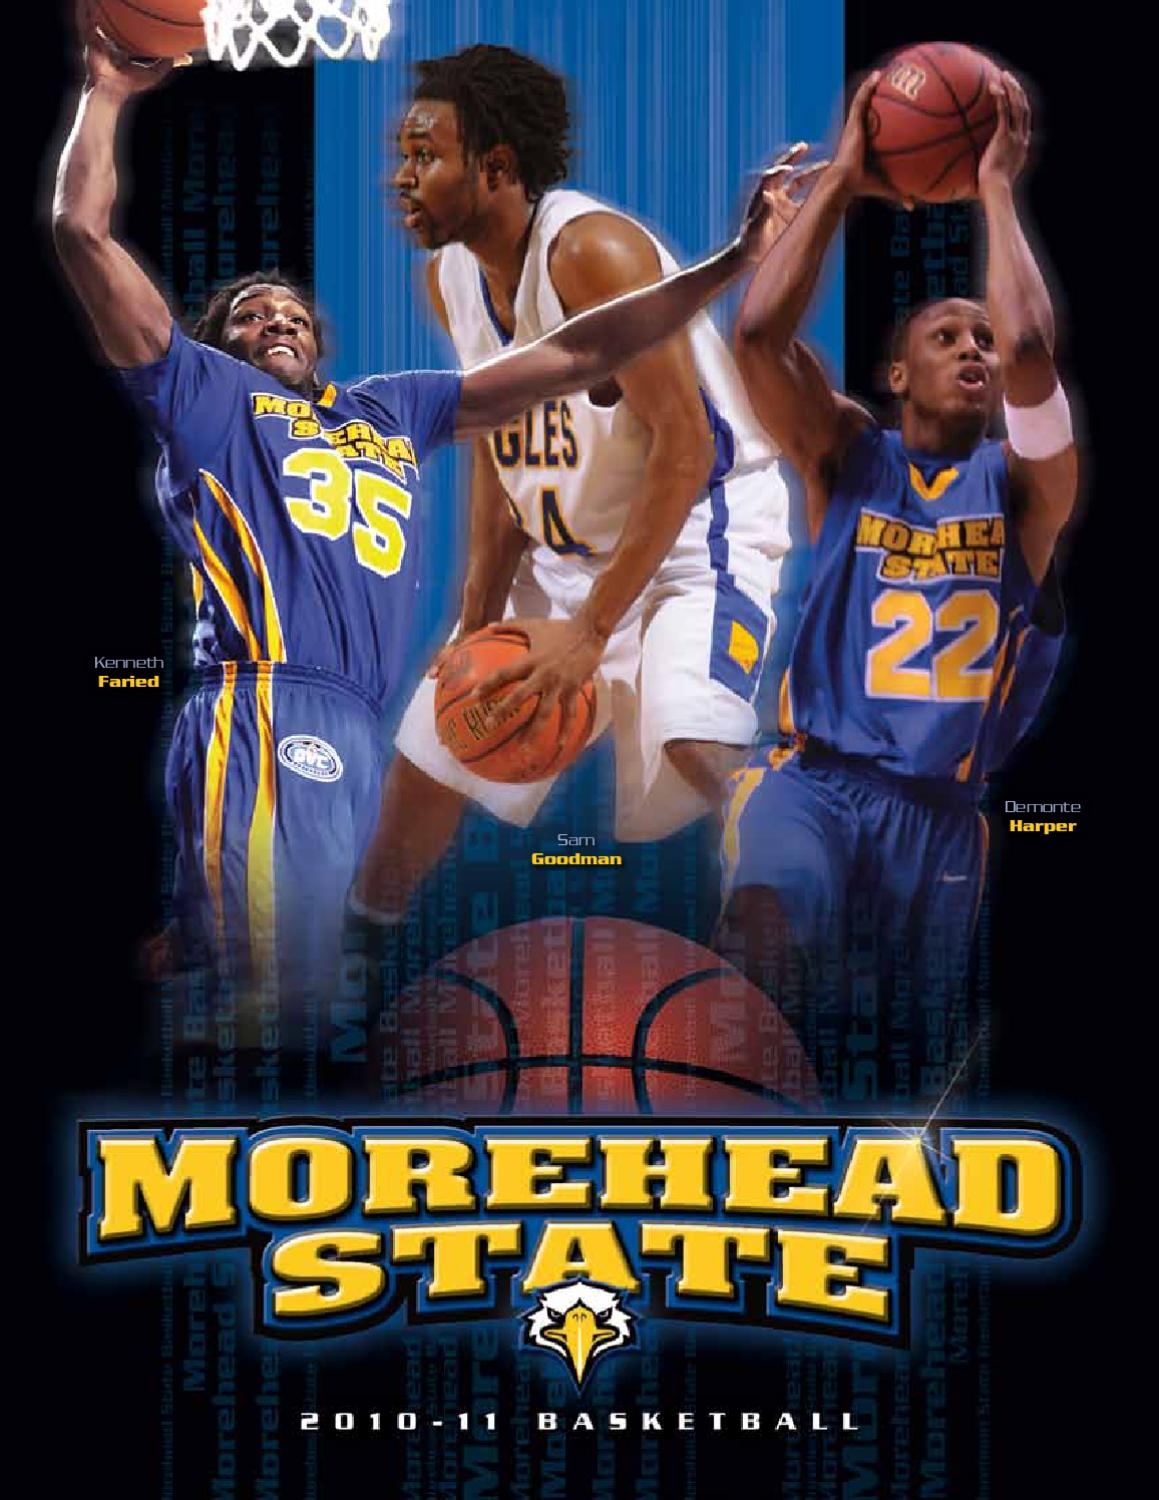 2010-11 Morehead State Men's Basketball Guide by Drew ...